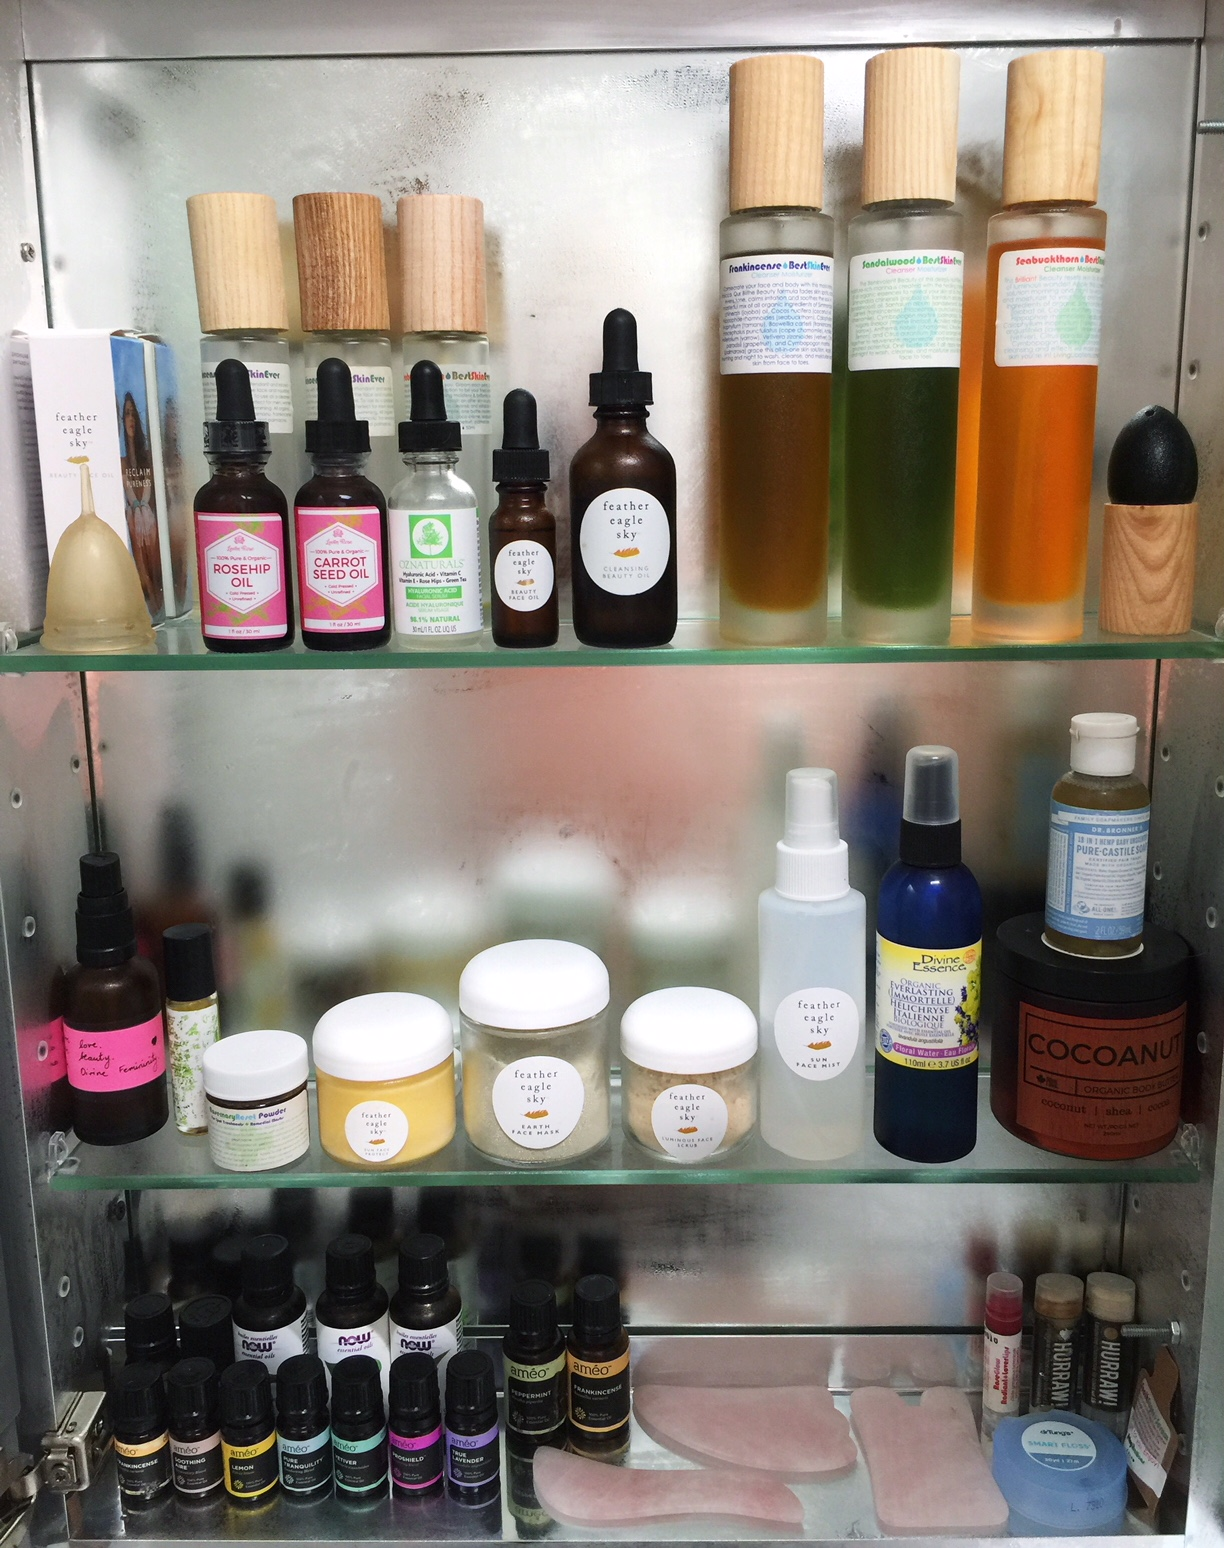 My own bathroom cabinet.  Zero sponsorship, paid for 100% out of pocket- advocating for brands I trust and value.